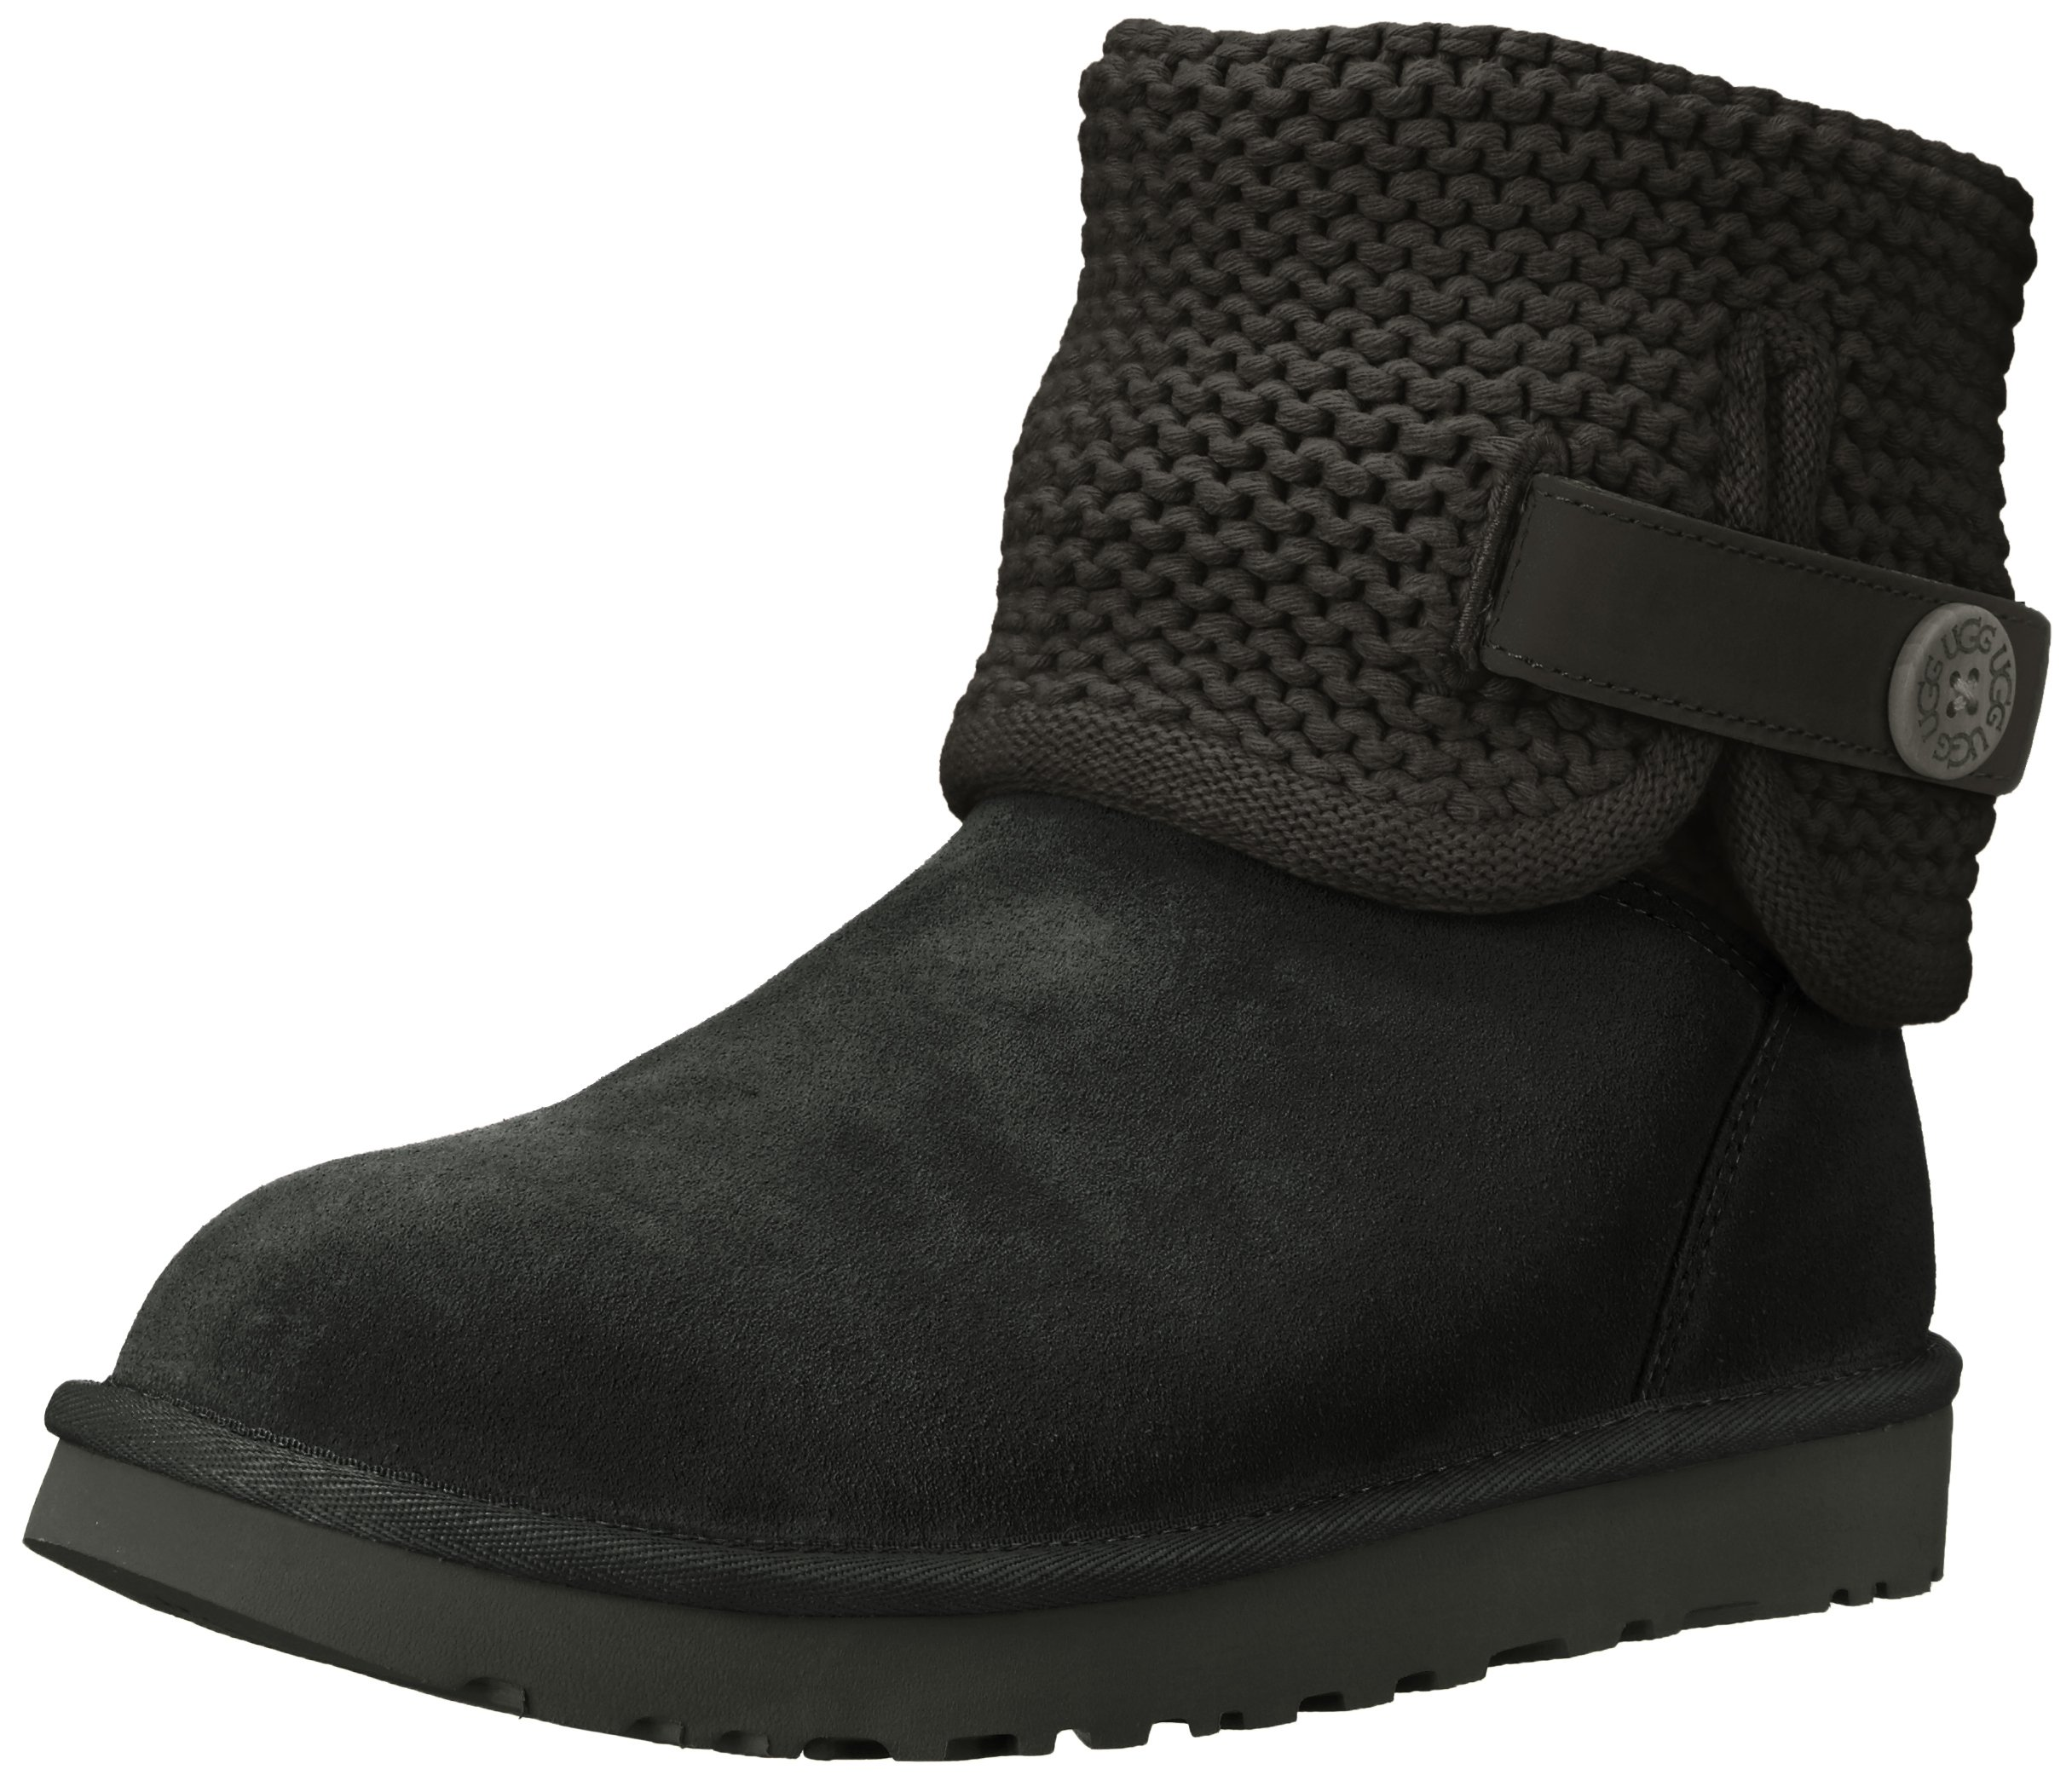 UGG Women's Shaina Slip on Slipper, Black, 5 M US